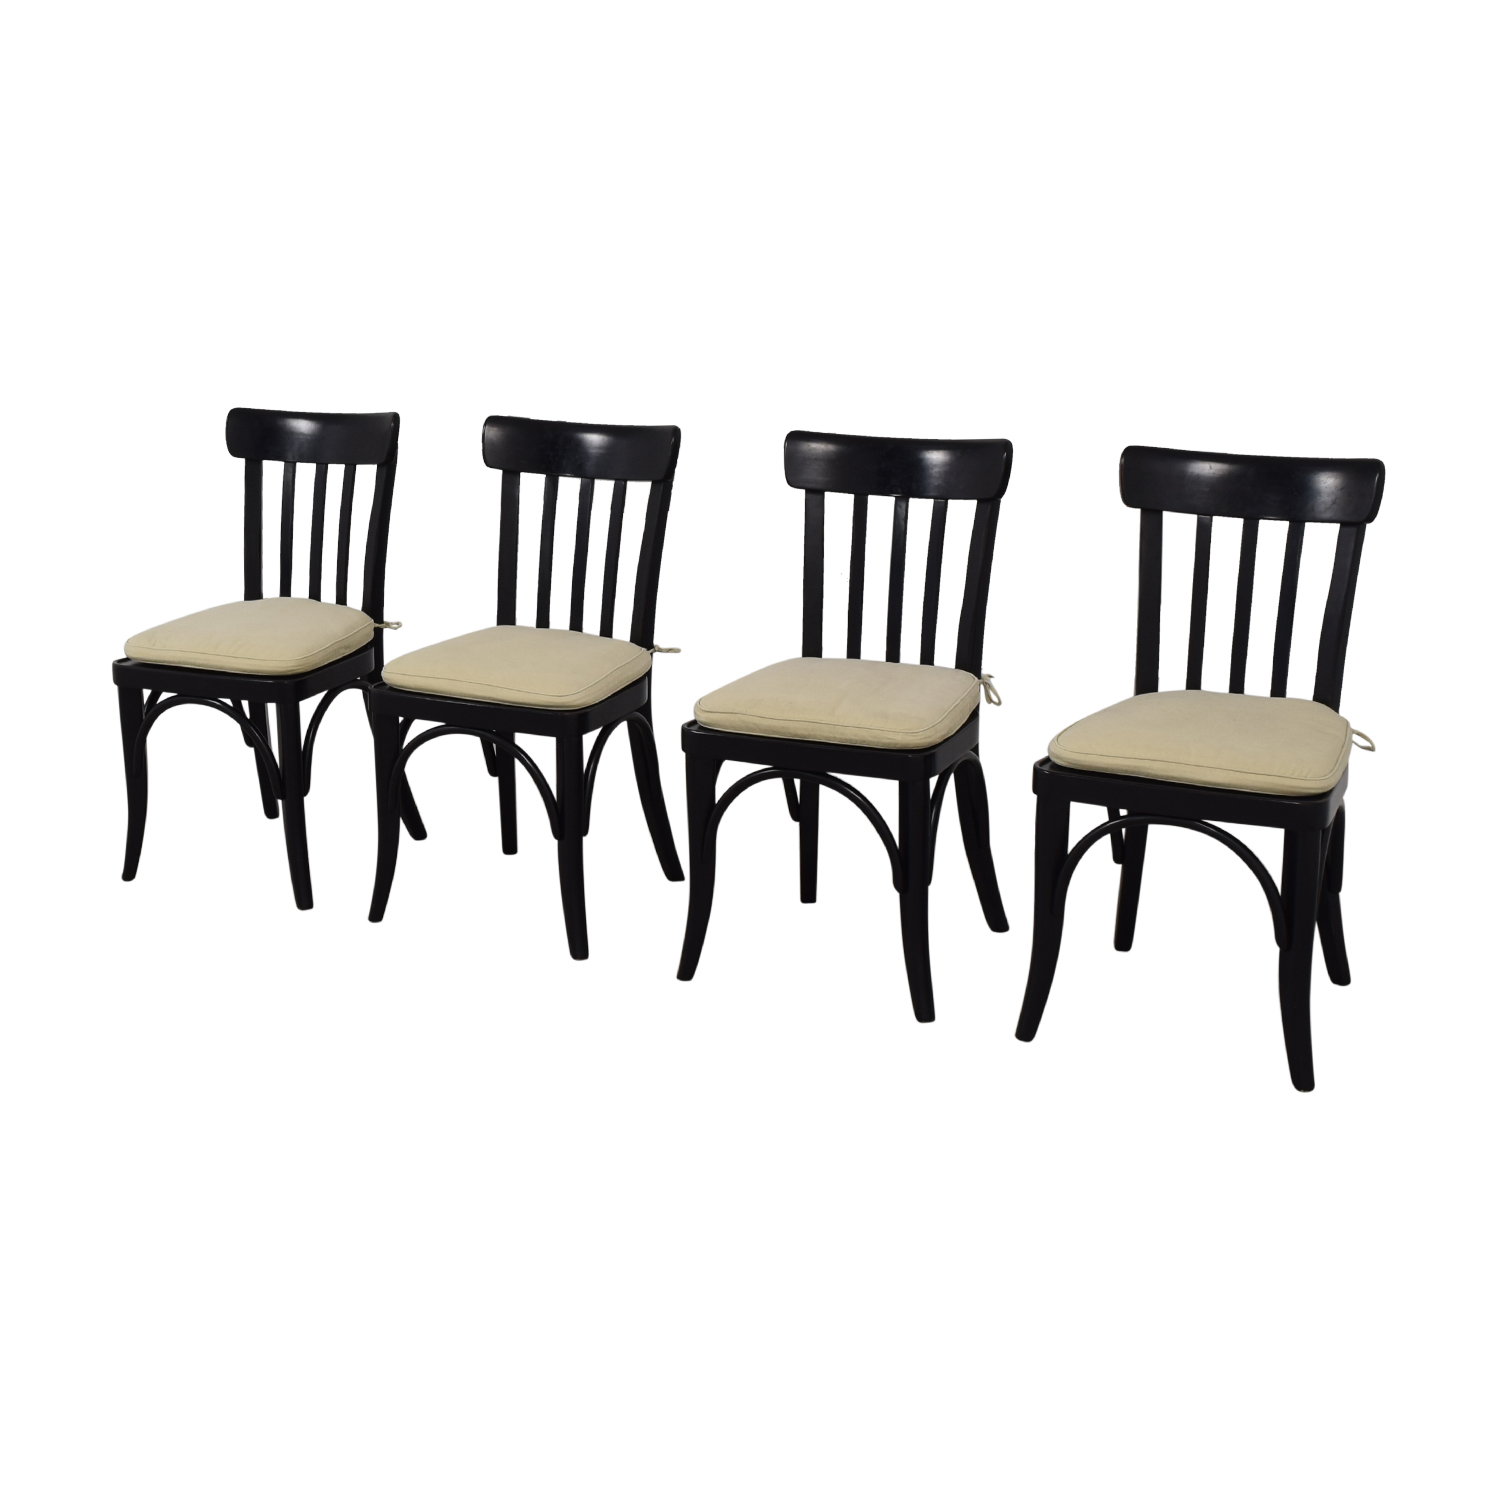 80% OFF - Pottery Barn Pottery Barn Brentwood Dining Chairs / Chairs